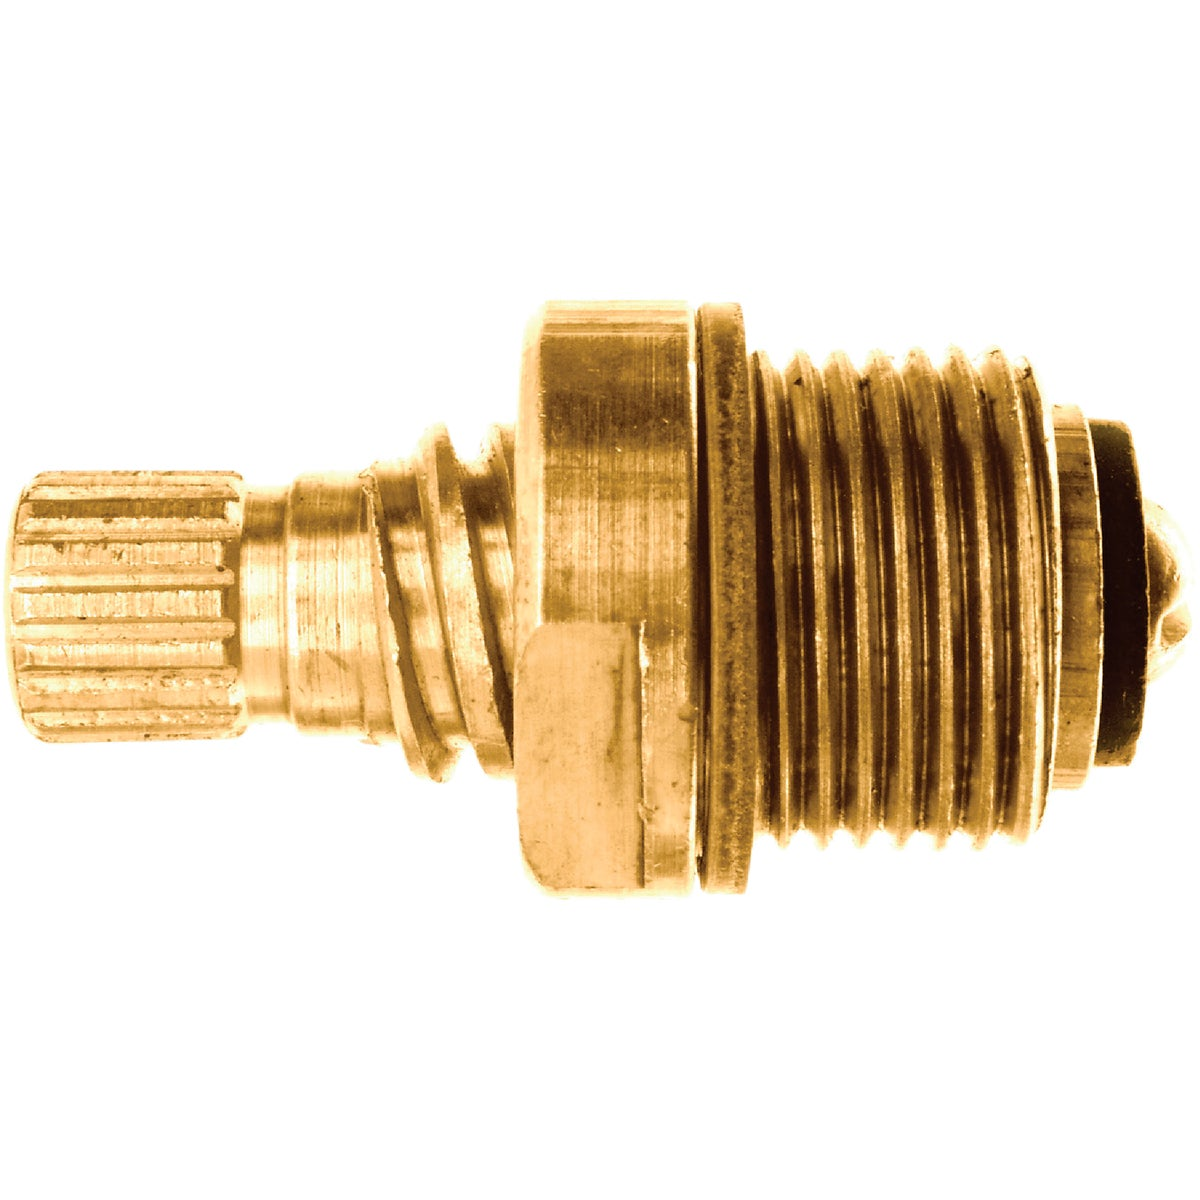 2J-1H AMER BRASS STEM - 15469E by Danco Perfect Match